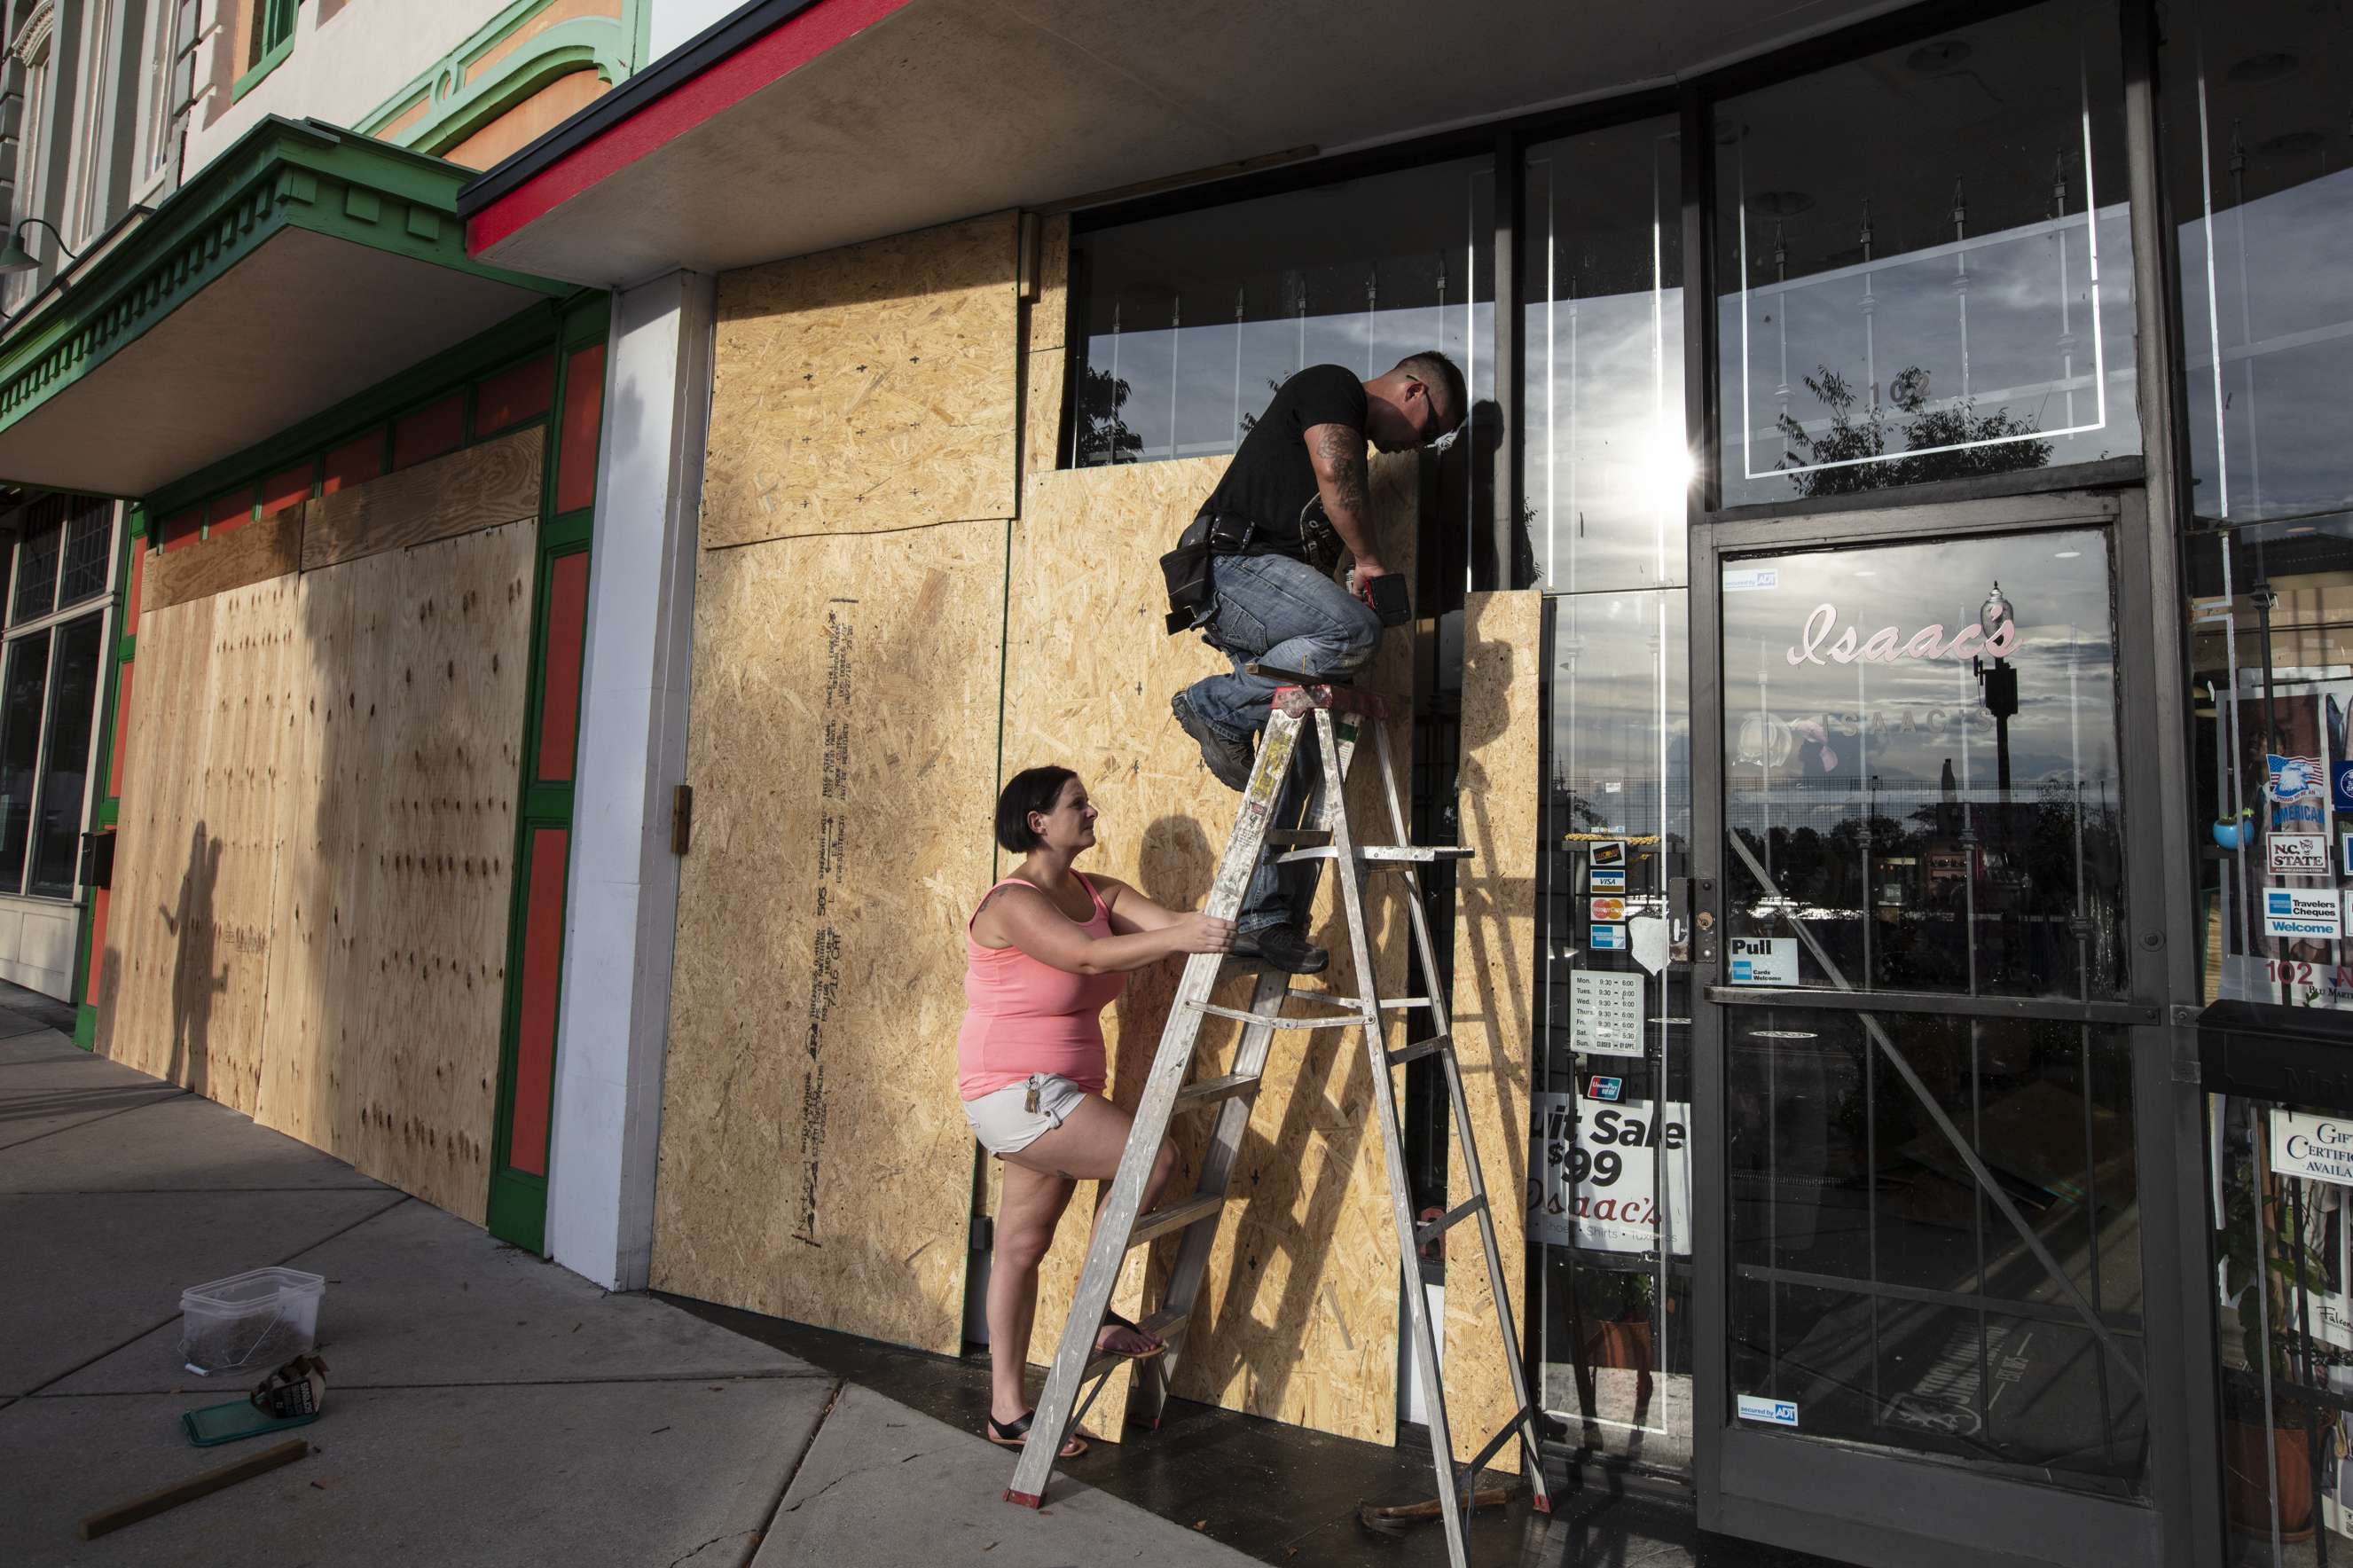 Jacob Harrelson and his wife Beth Harrelson install protective plywood on a local business in anticipation of Hurricane Florence in Wilmington N.C. on Wednesday